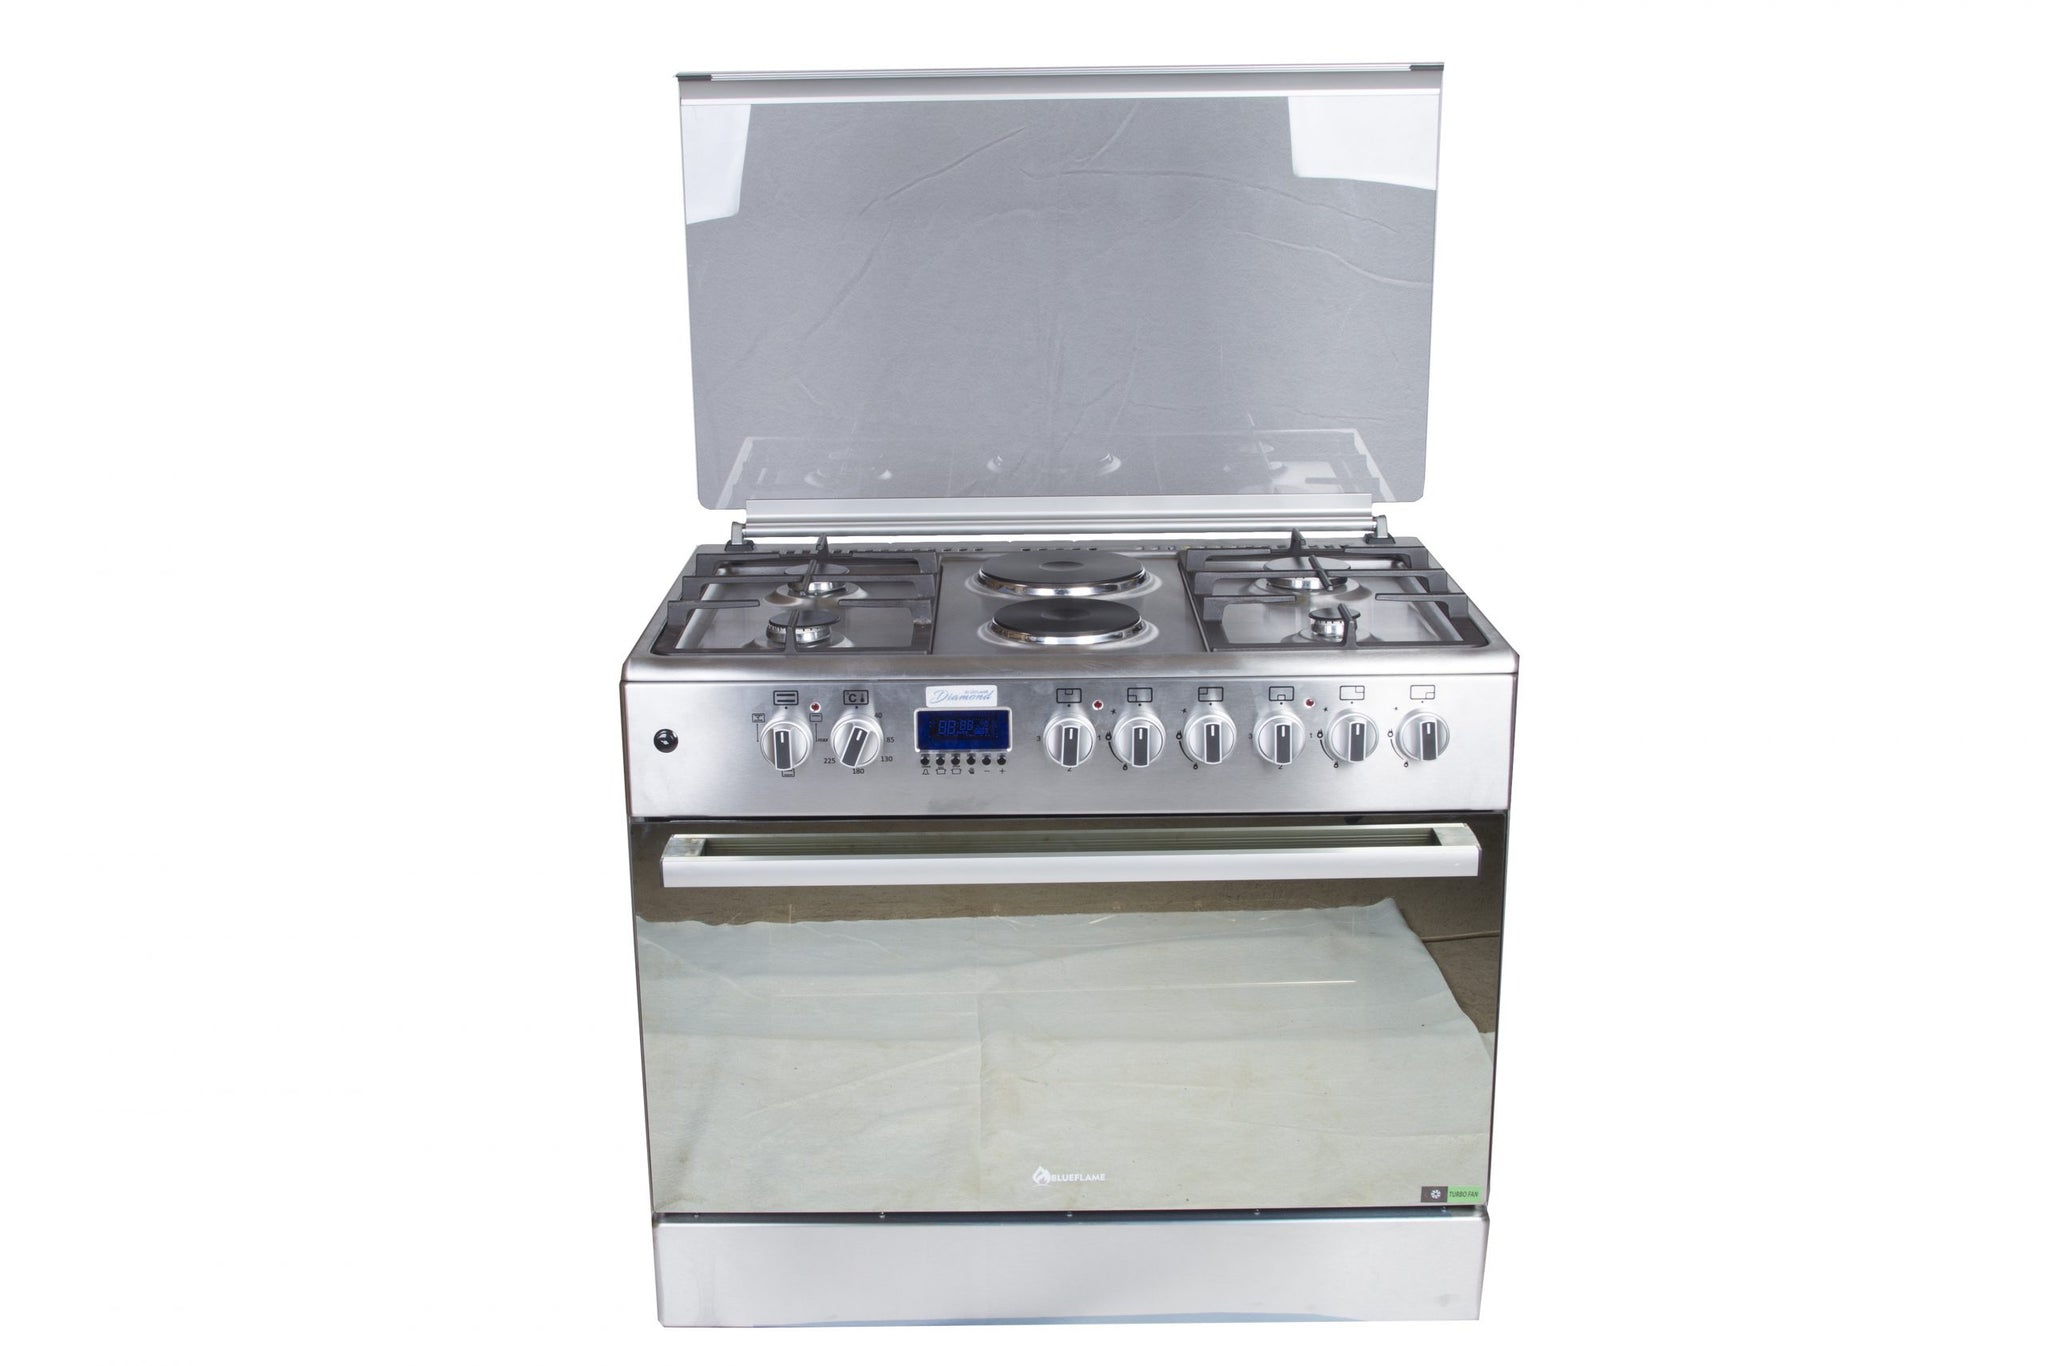 BlueFlame Diamond E9042EFR Stainless Steel 4 Gas Cooker + 2 Electric Plates 90x60cm With Electric Oven - Inox